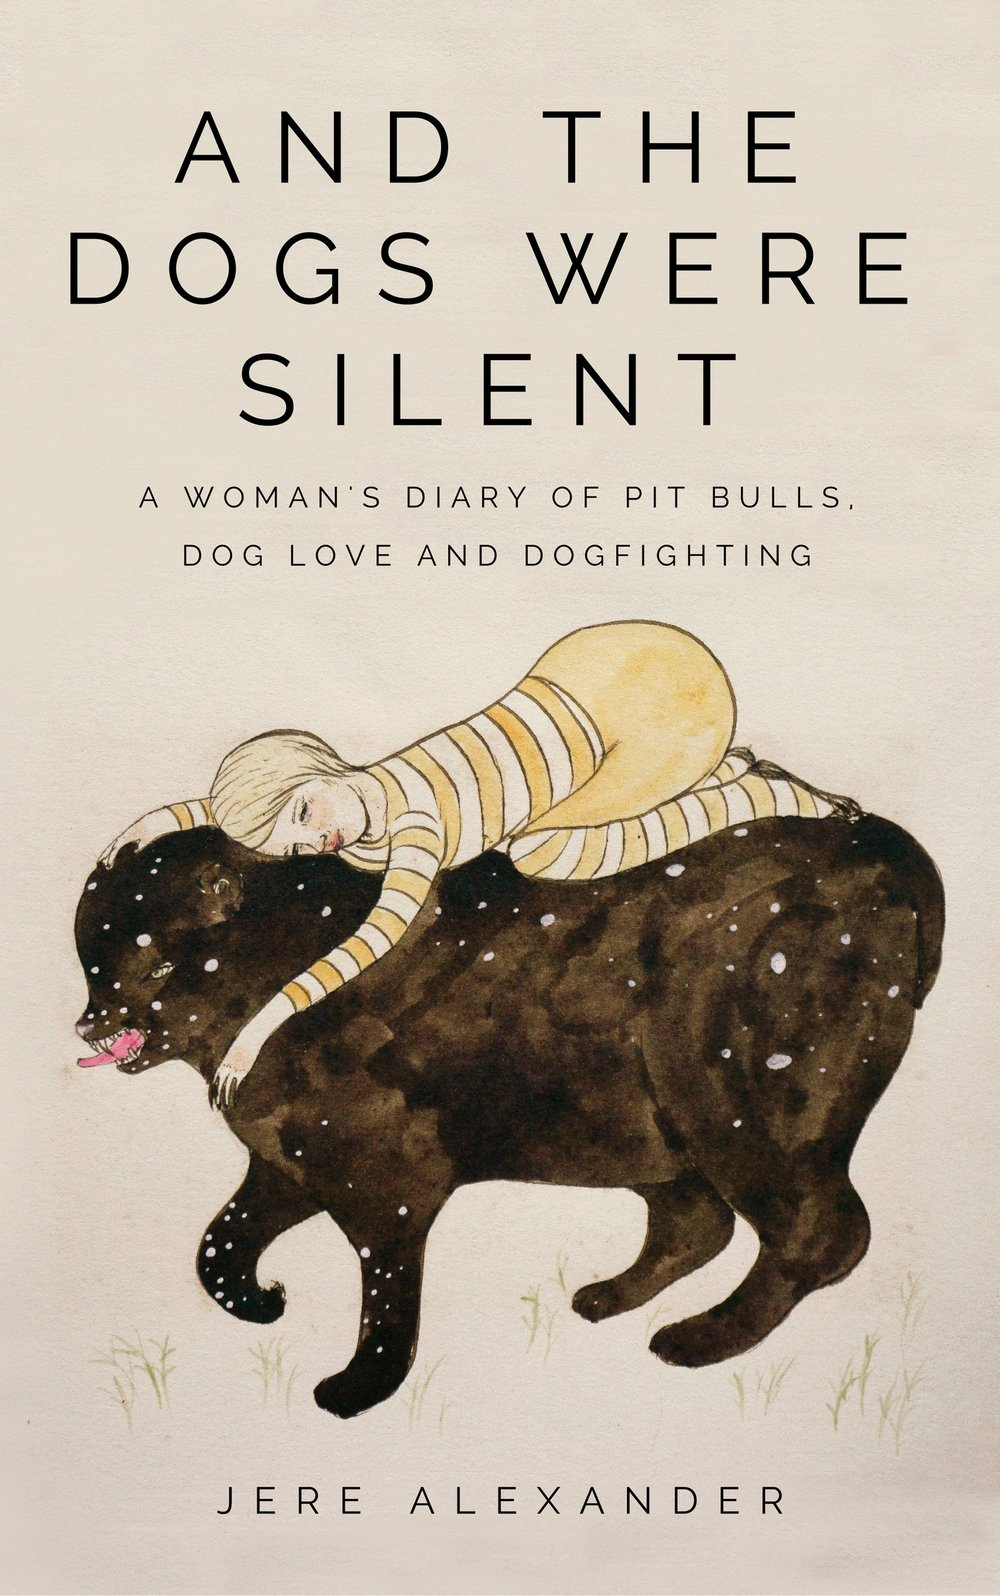 About the book... - When graduate student Jere Alexander began her research on human-animal relationships, she couldn't have foreseen that months later she would find herself embedded in the illegal underground world of professional dogfighting. Follow her harrowing journey from student to